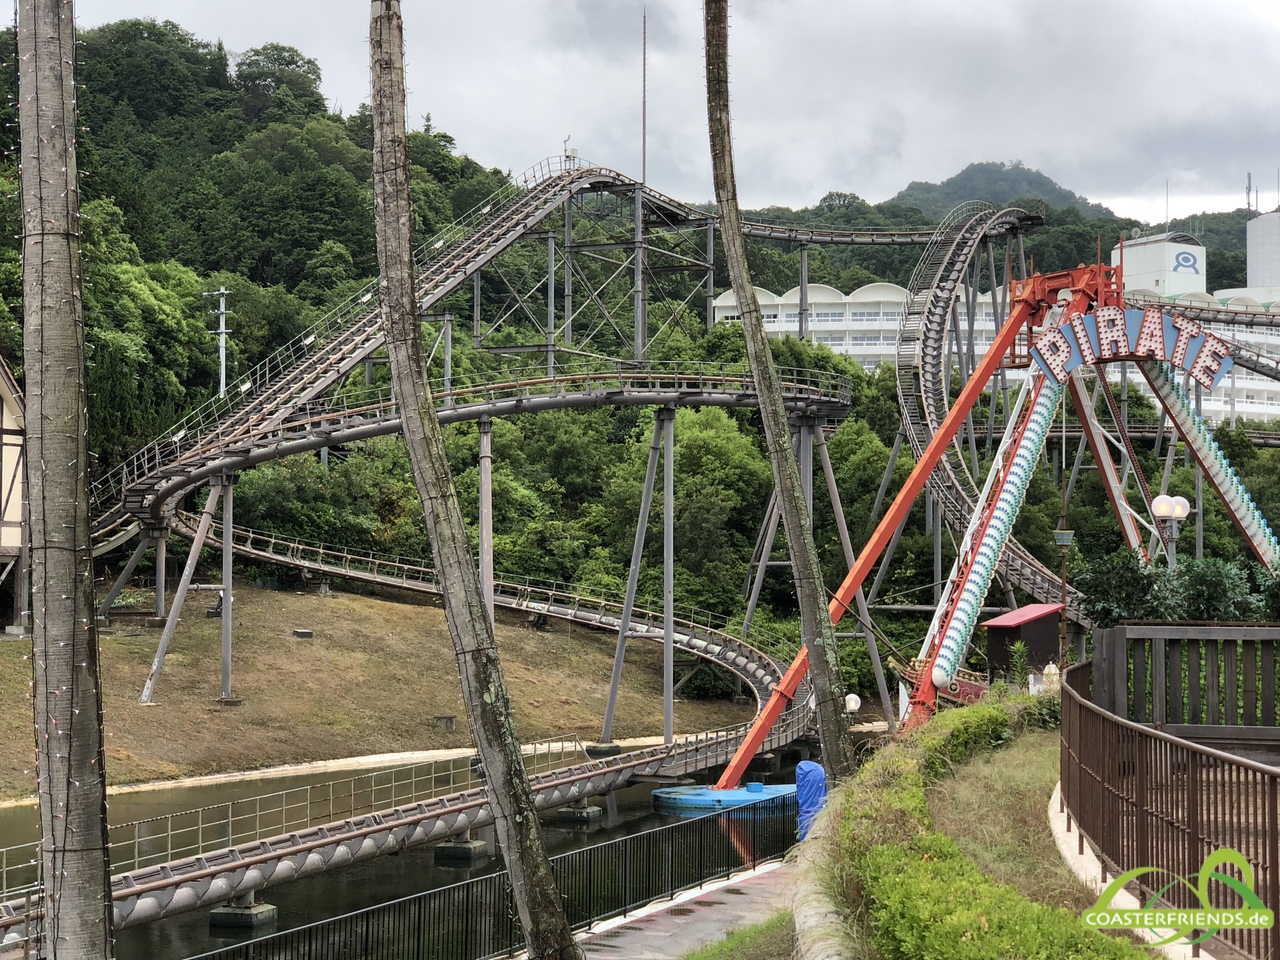 Asien - https://coasterfriends.de/joomla//images/pcp_parkdetails/asien/o1961_new_reoma_world/content3.jpg